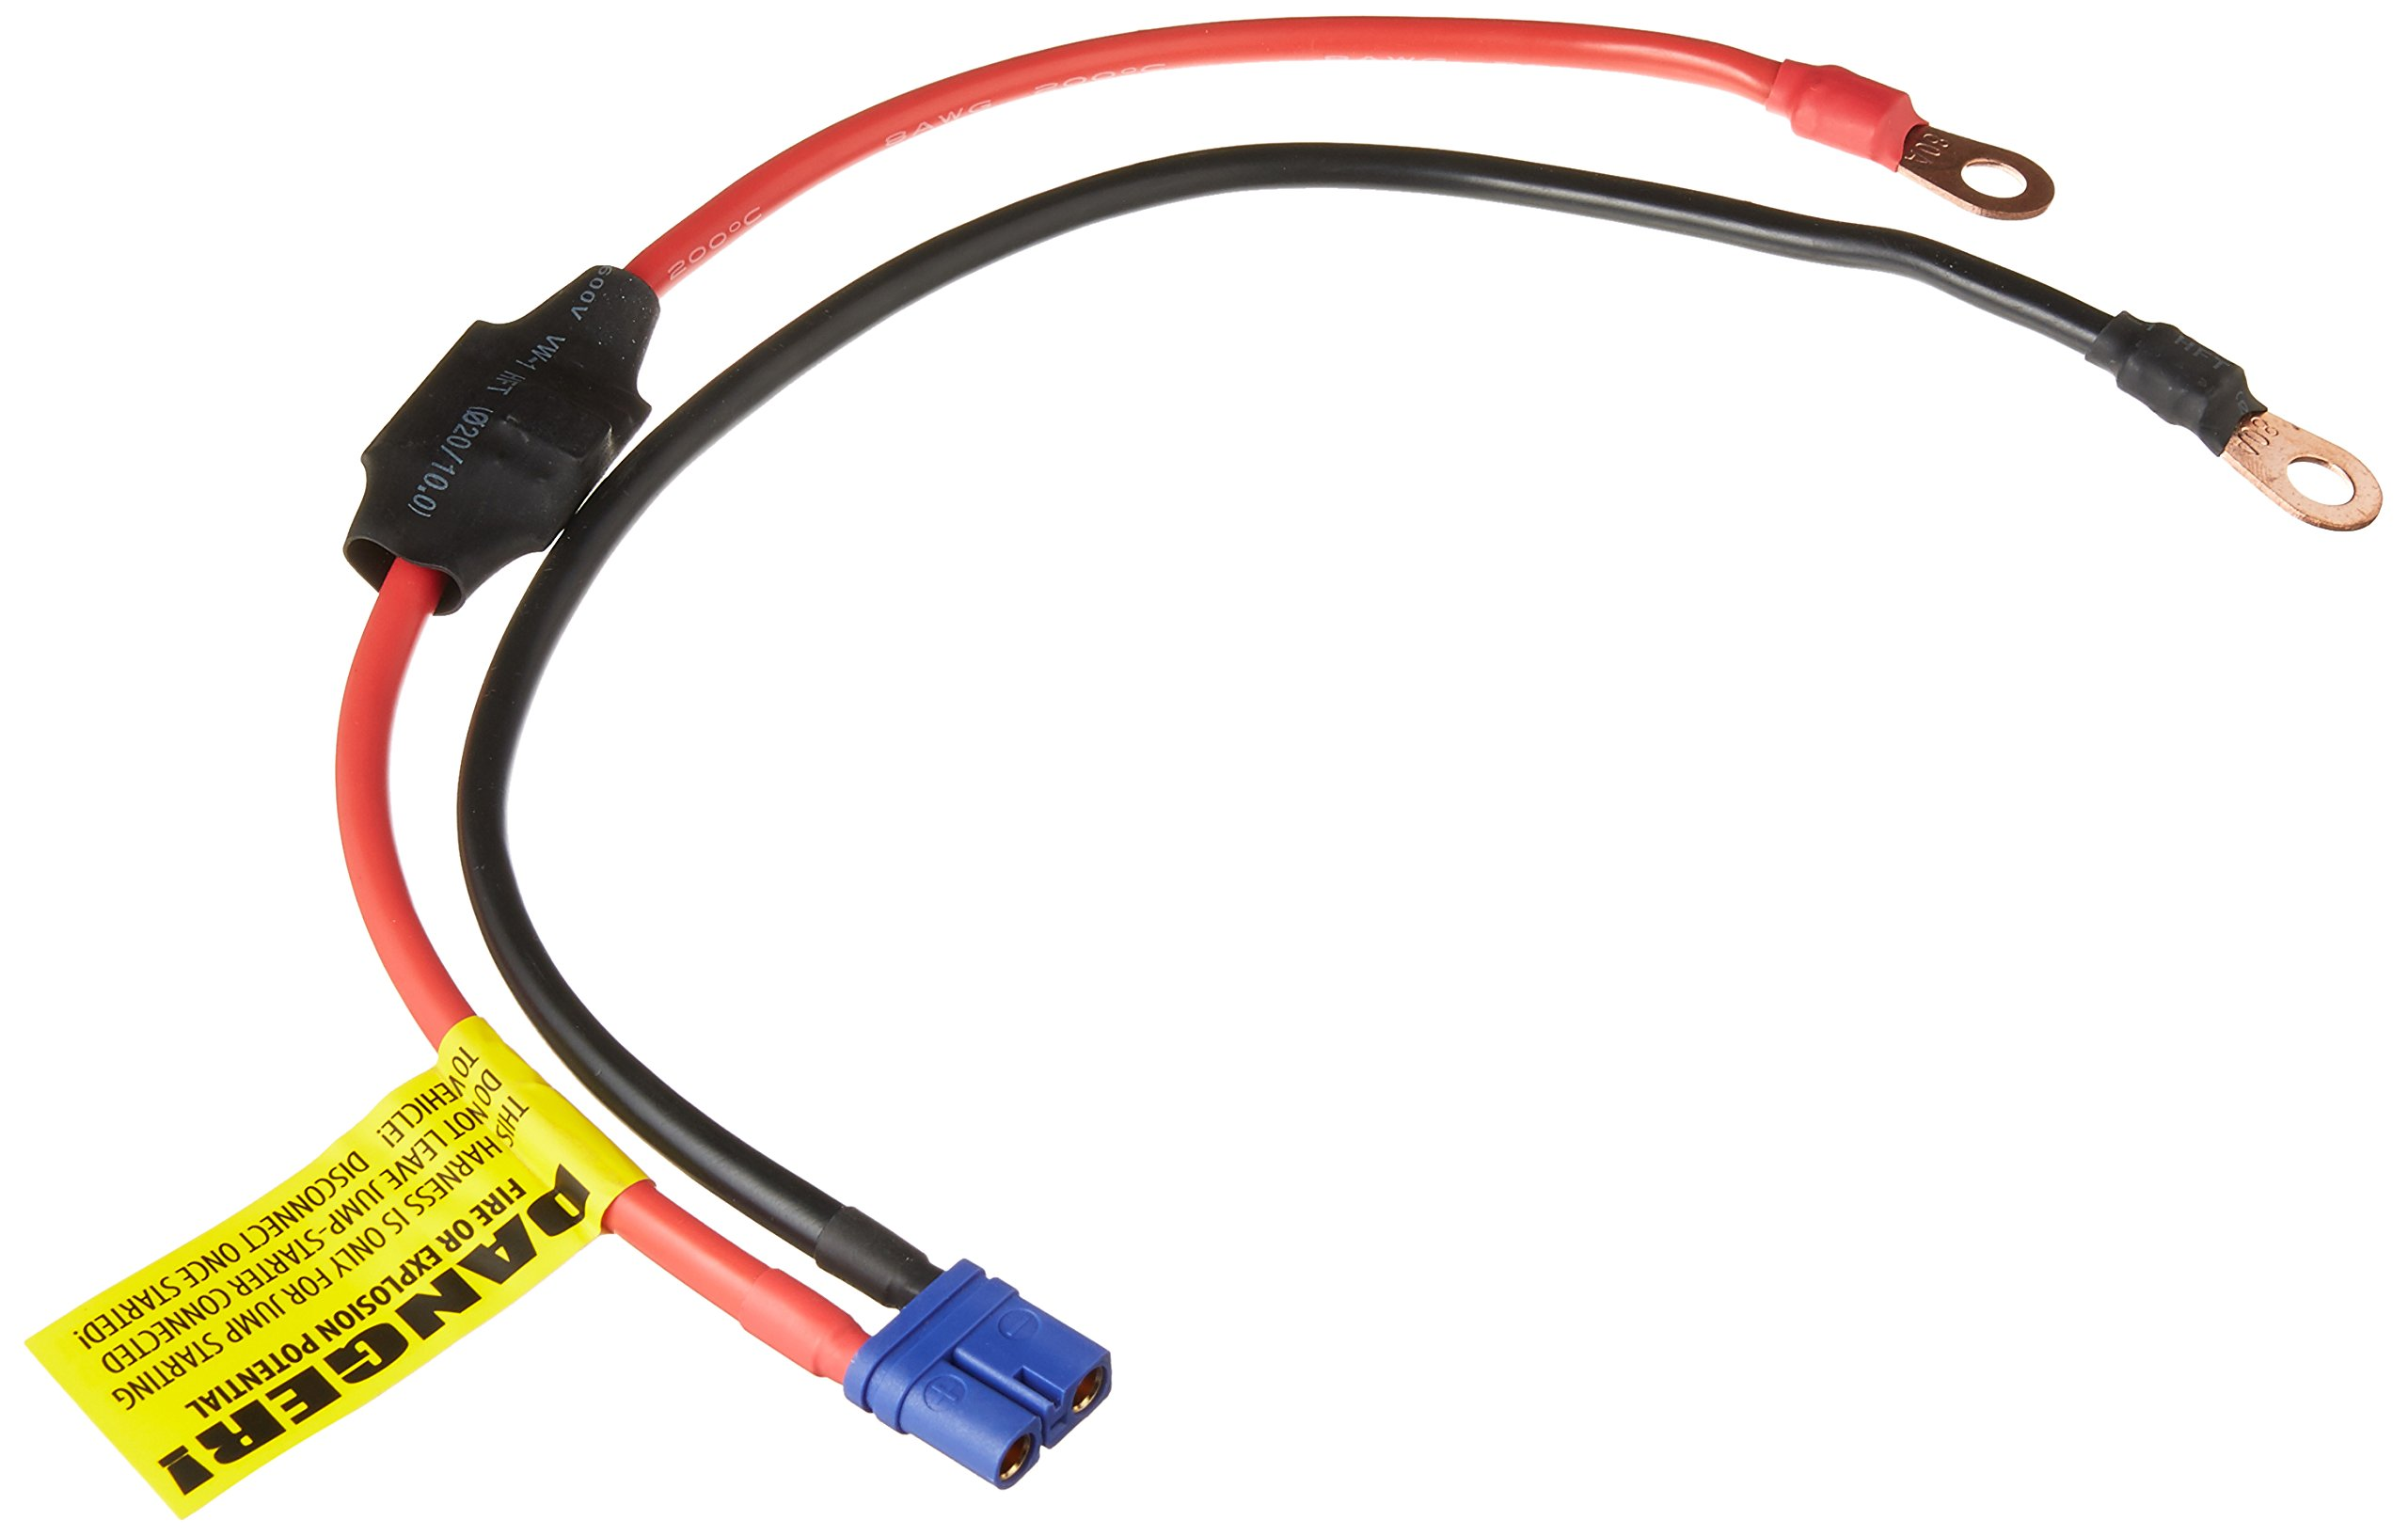 Antigravity Batteries AG-MSA-10TP Clampless Starting Harness (For NEWER XP-1 and XP-3), 1 Pack